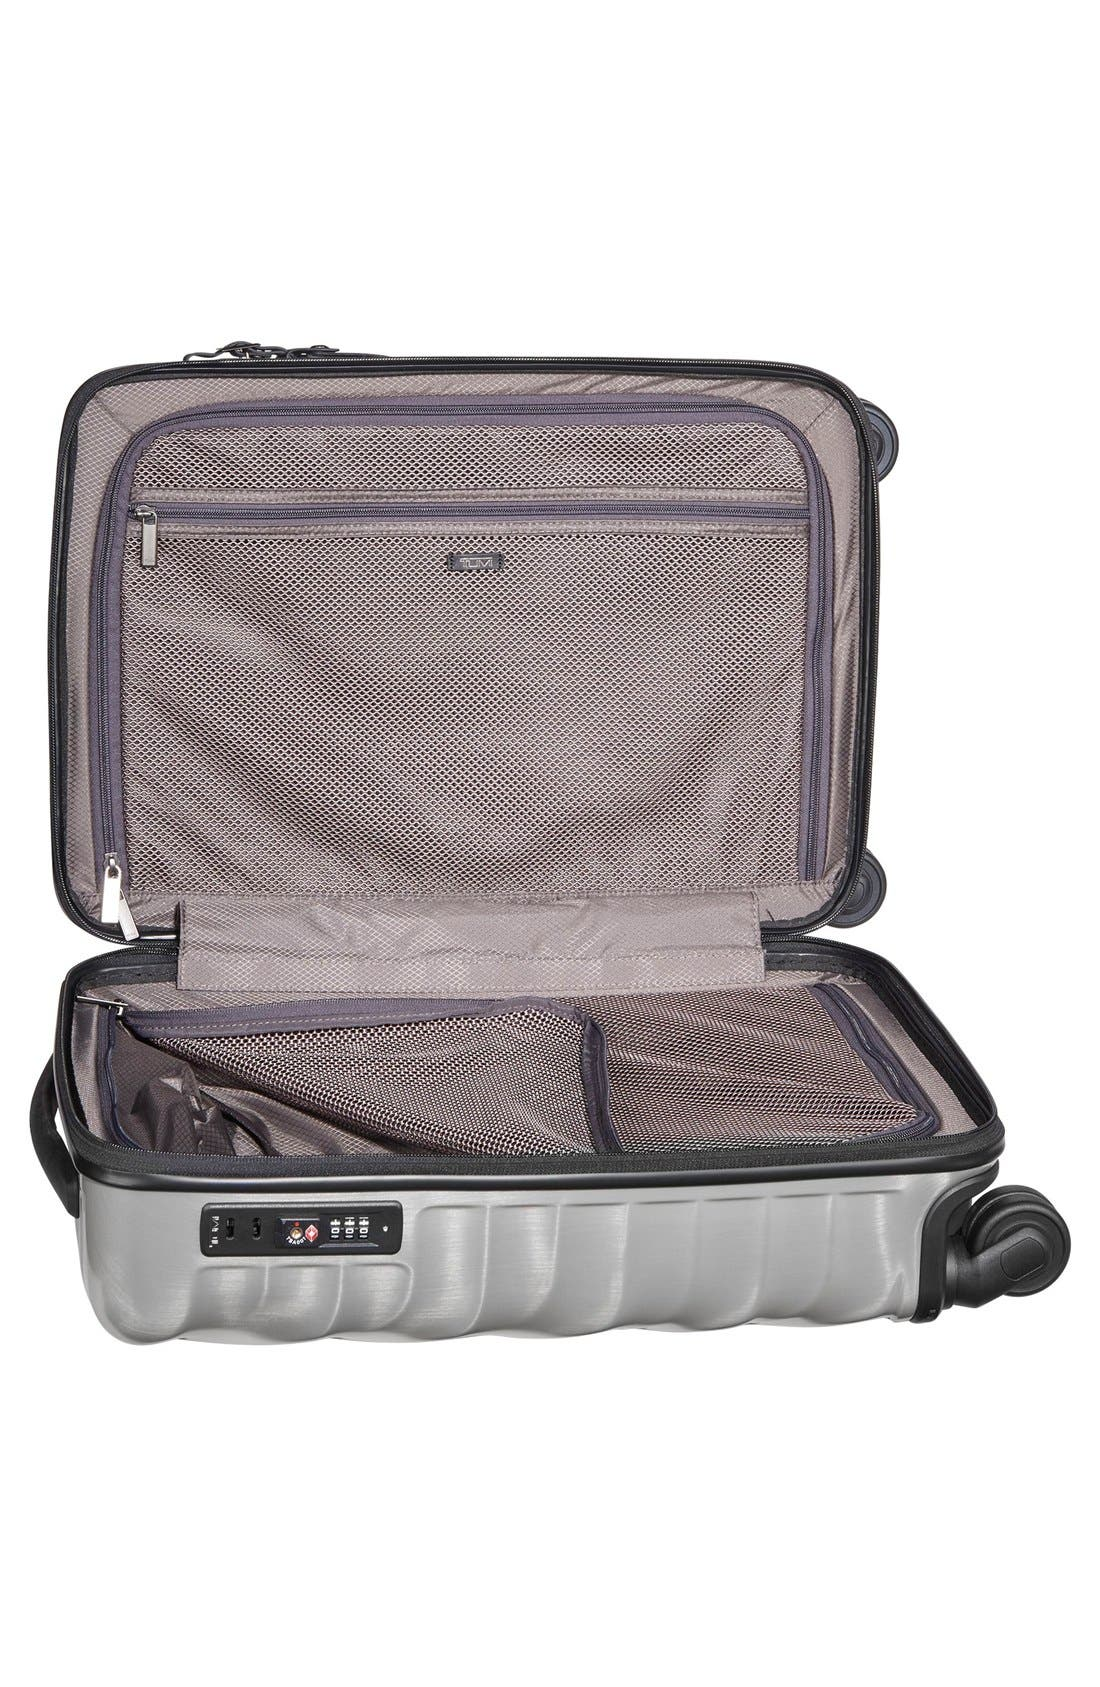 19 Degree 22 Inch Continental Wheeled Carry-On,                             Alternate thumbnail 5, color,                             Silver